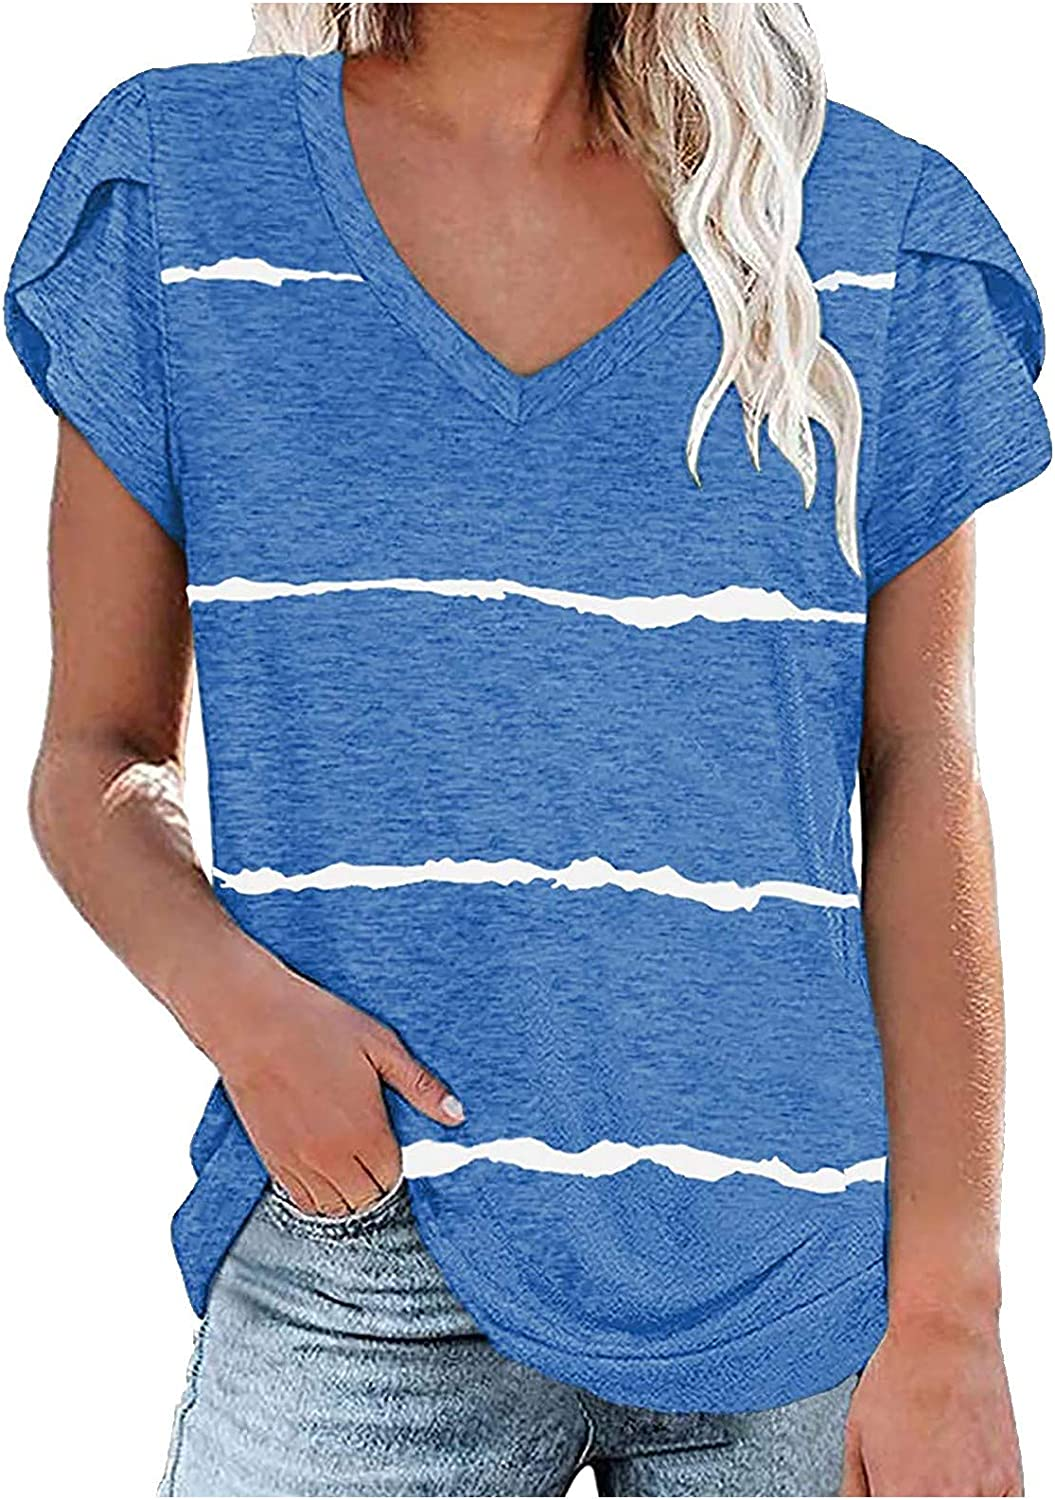 GKASA Short Sleeve Shirts for Women Tops Year-end gift Neck Striped Print Limited price Su V